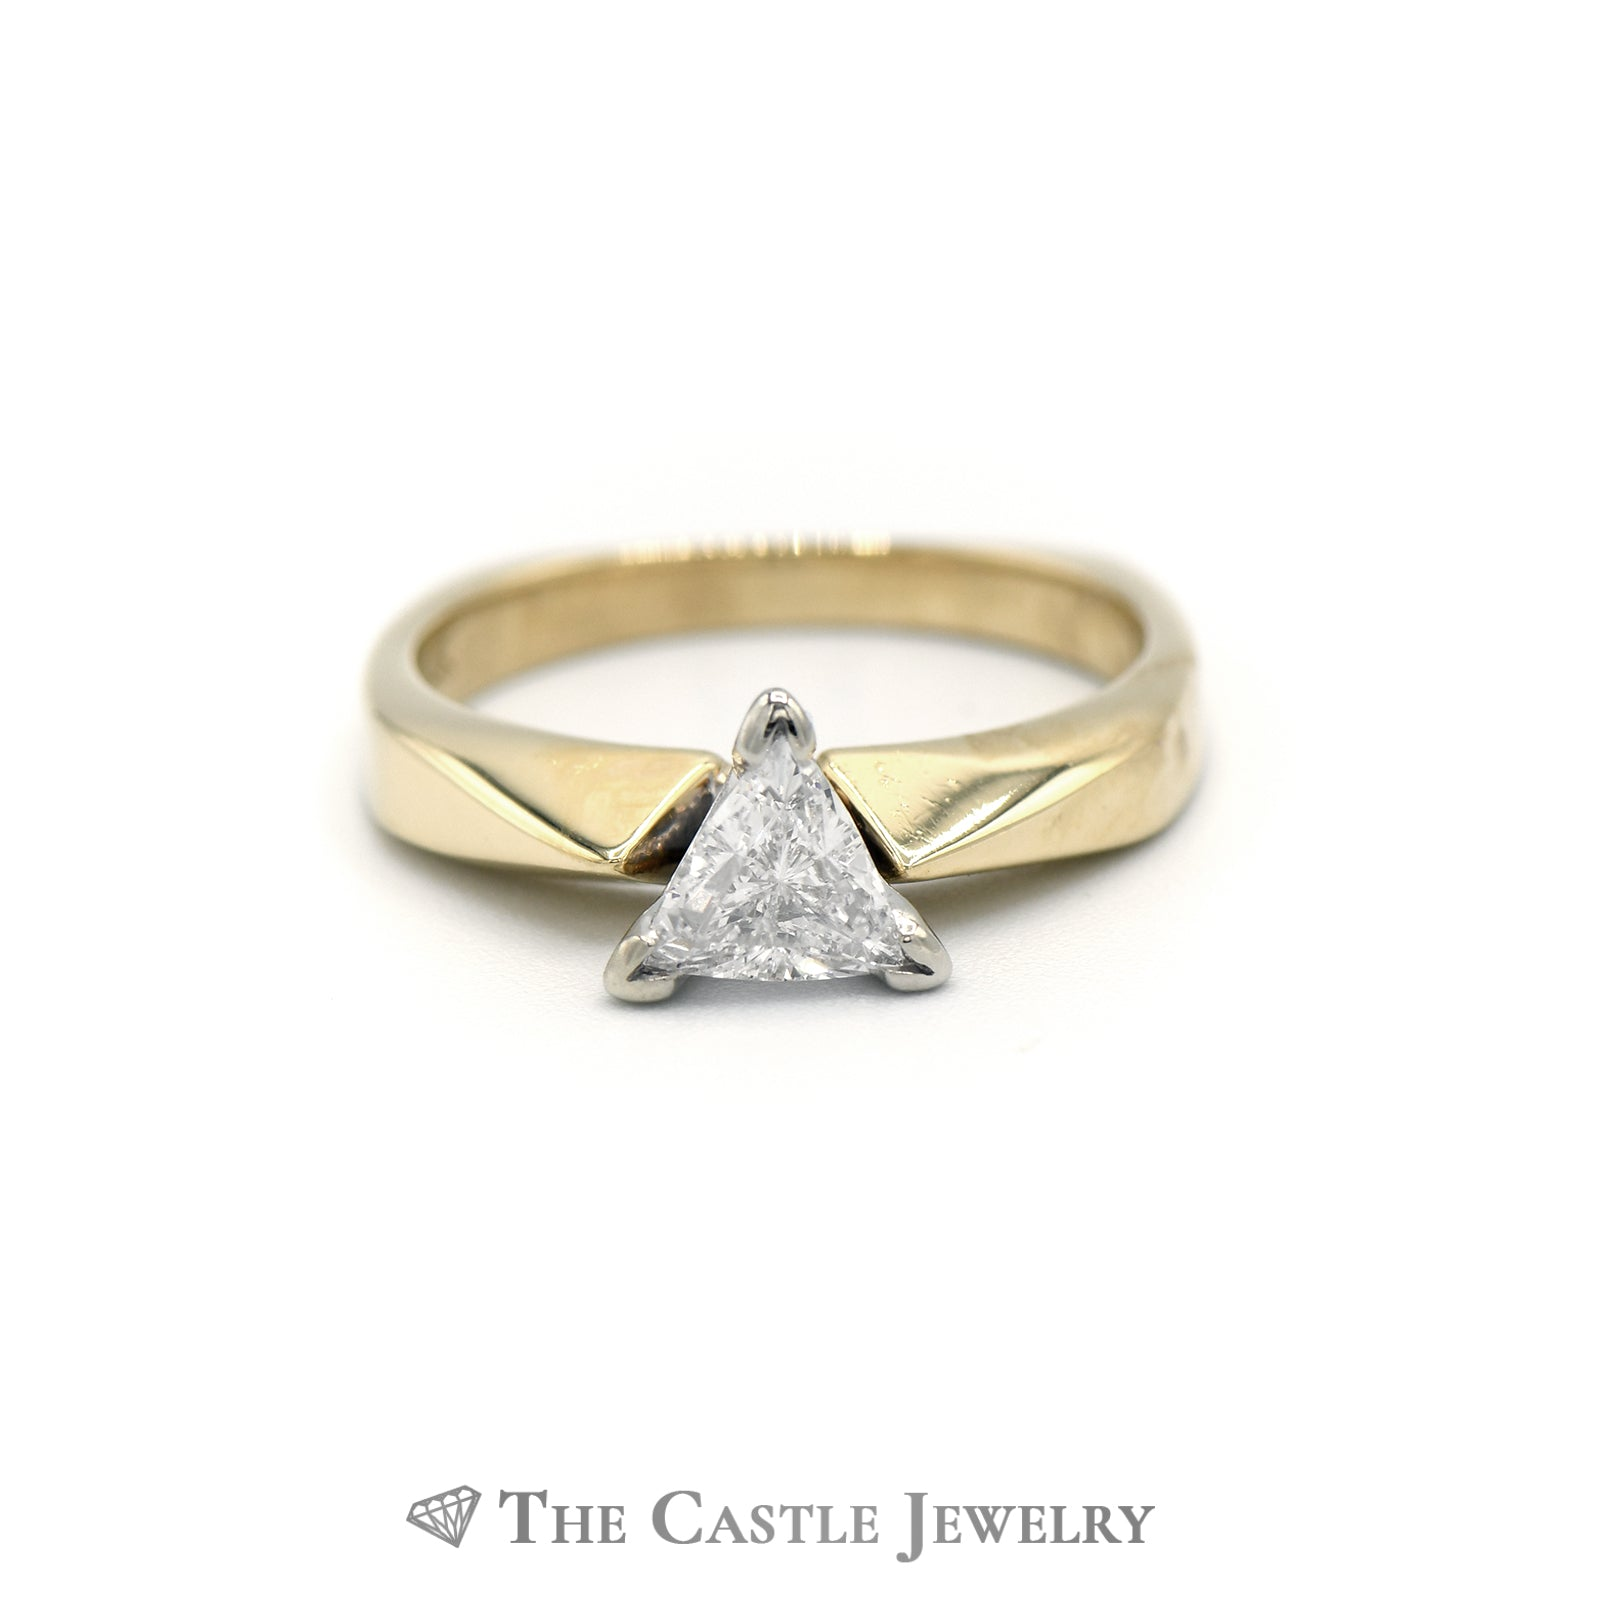 Trillion Cut Solitaire Diamond Engagement Ring in 14K Yellow Gold